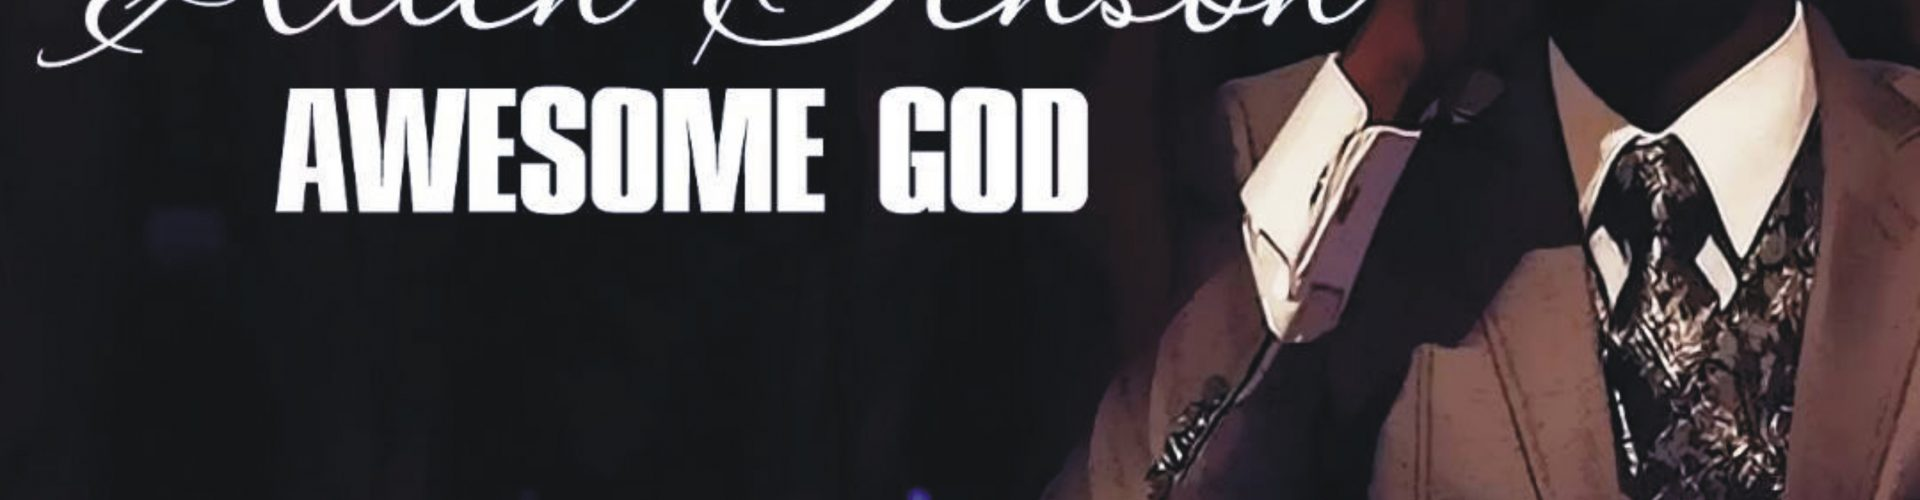 [New Music] Awesome God – Allen Benson @allensings @arkmuzik @kbkjnr